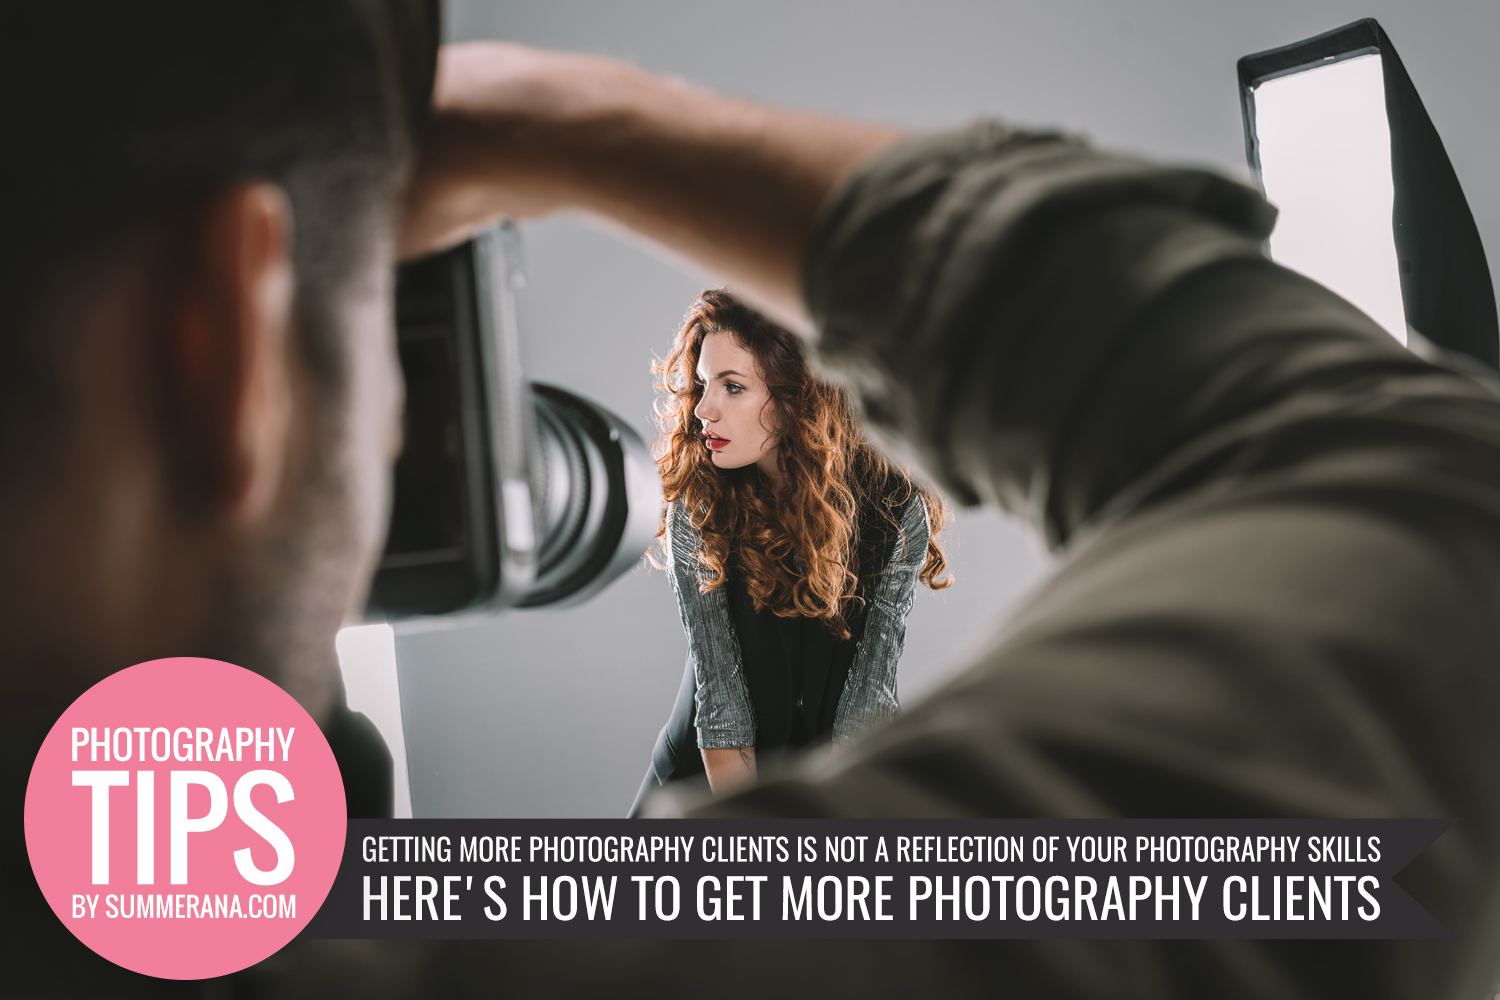 how-to-get-more-photography-clients-seo.jpg